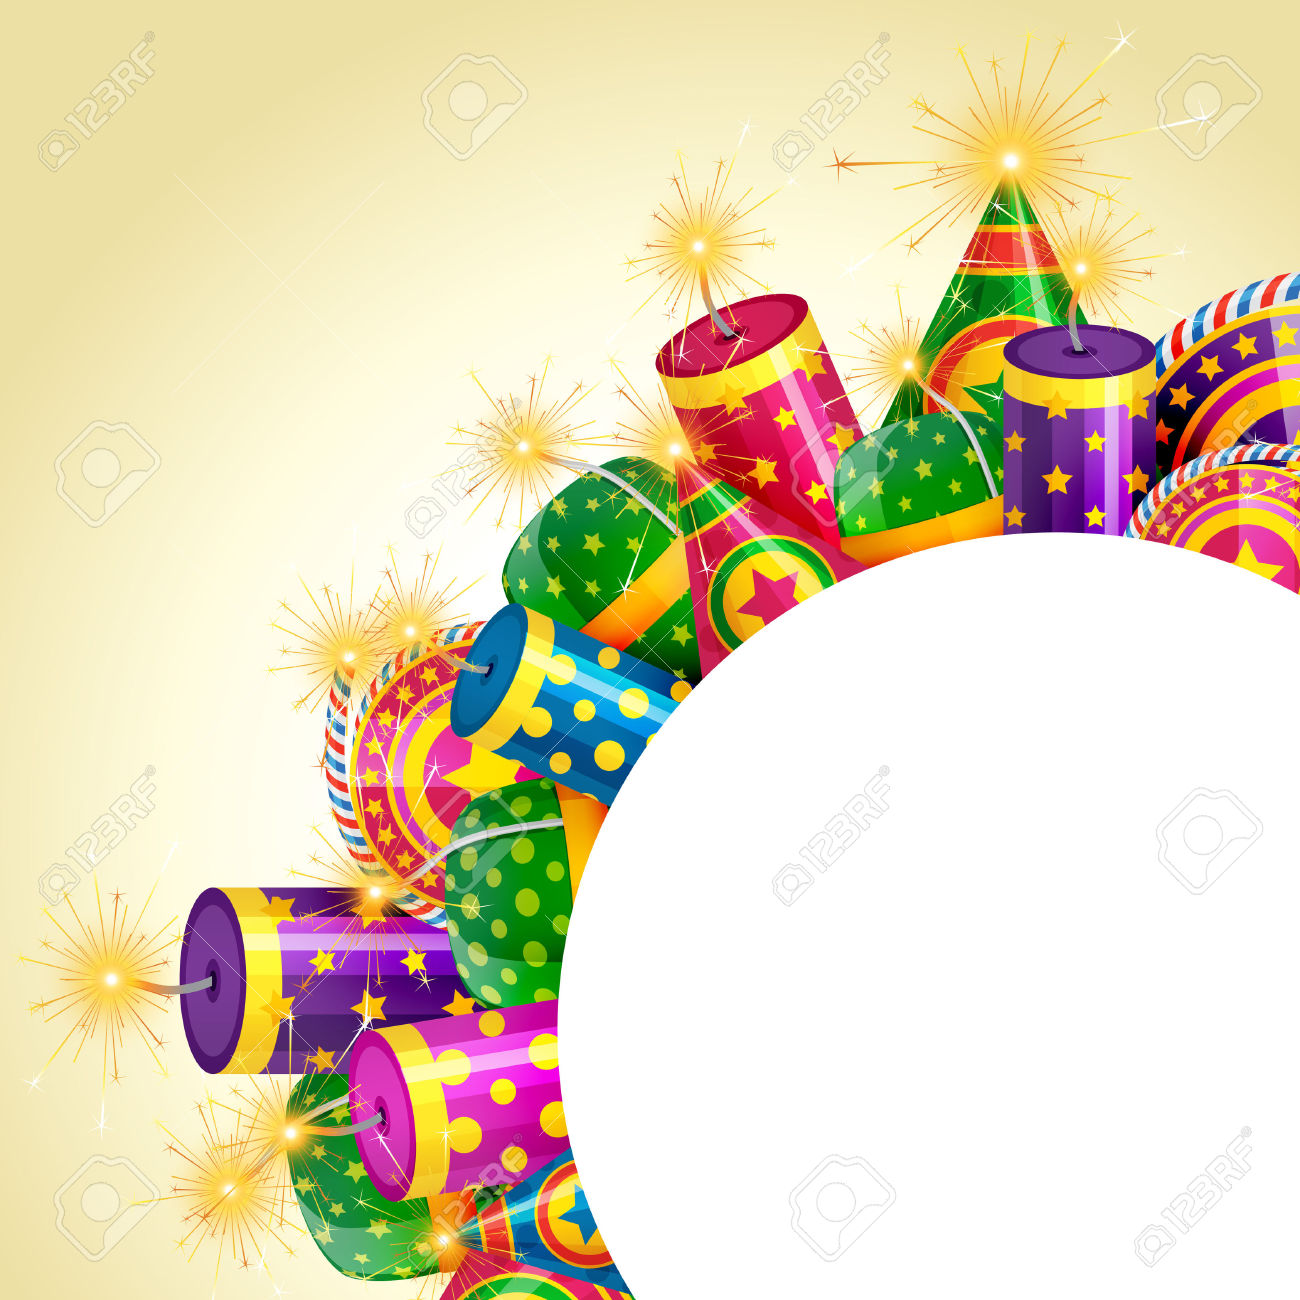 Clipart diwali background clip royalty free stock Diwali Clipart Free Download | Free download best Diwali Clipart ... clip royalty free stock